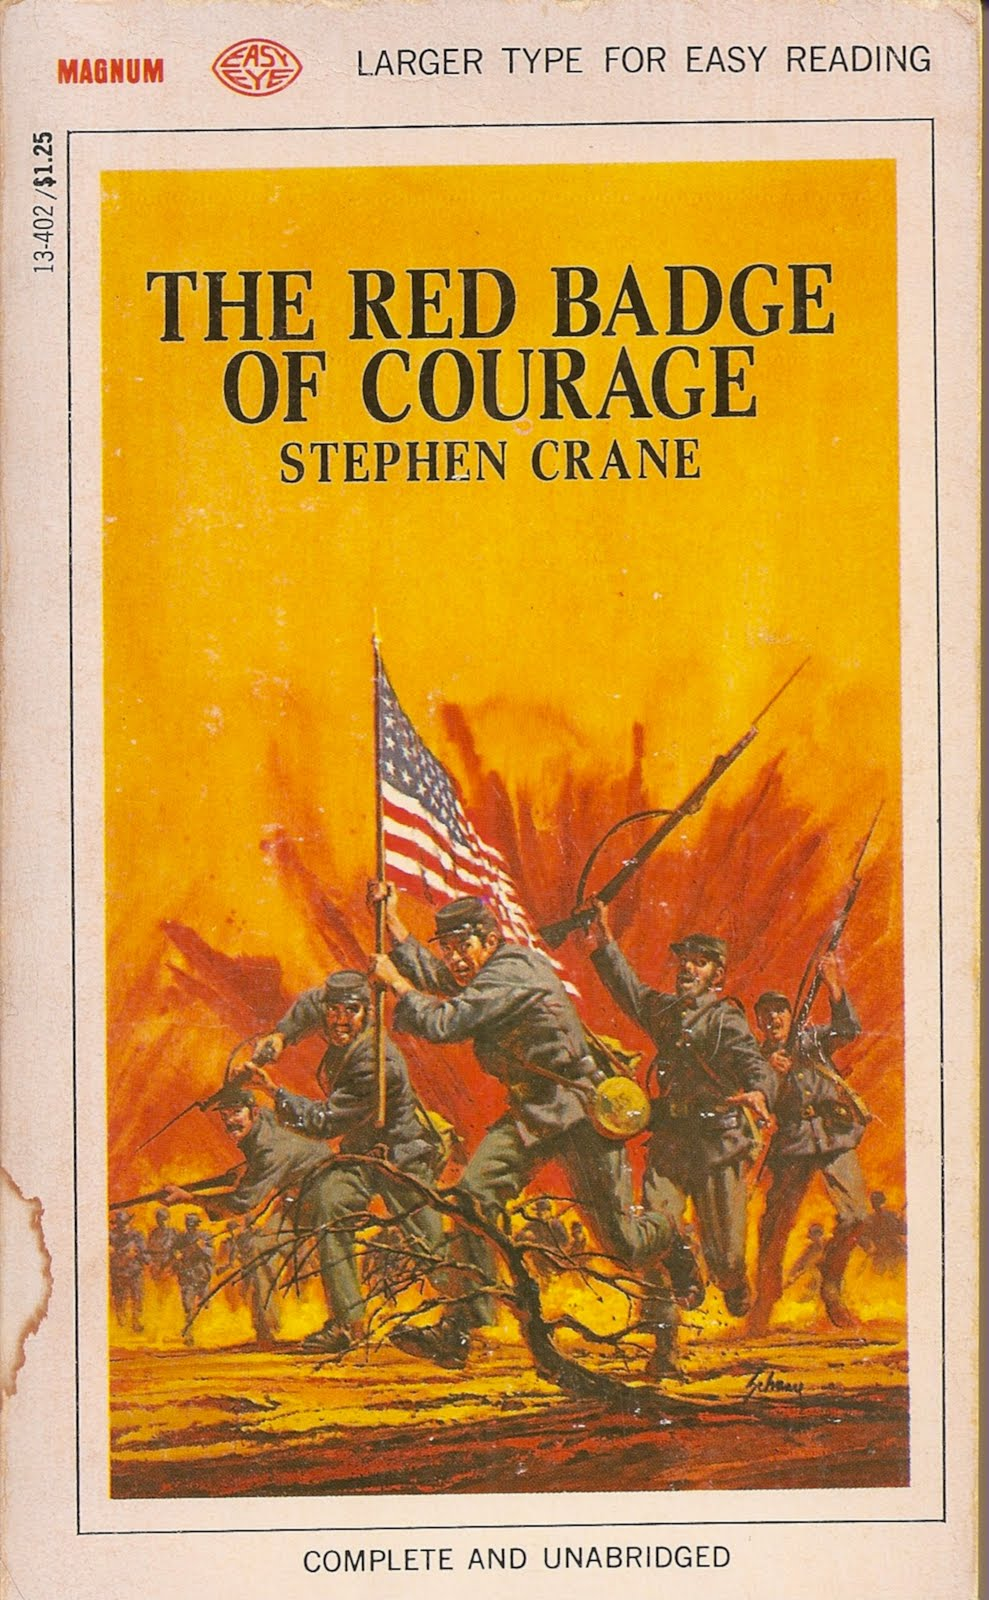 stephen cranes literary techniques in the red badge of courage